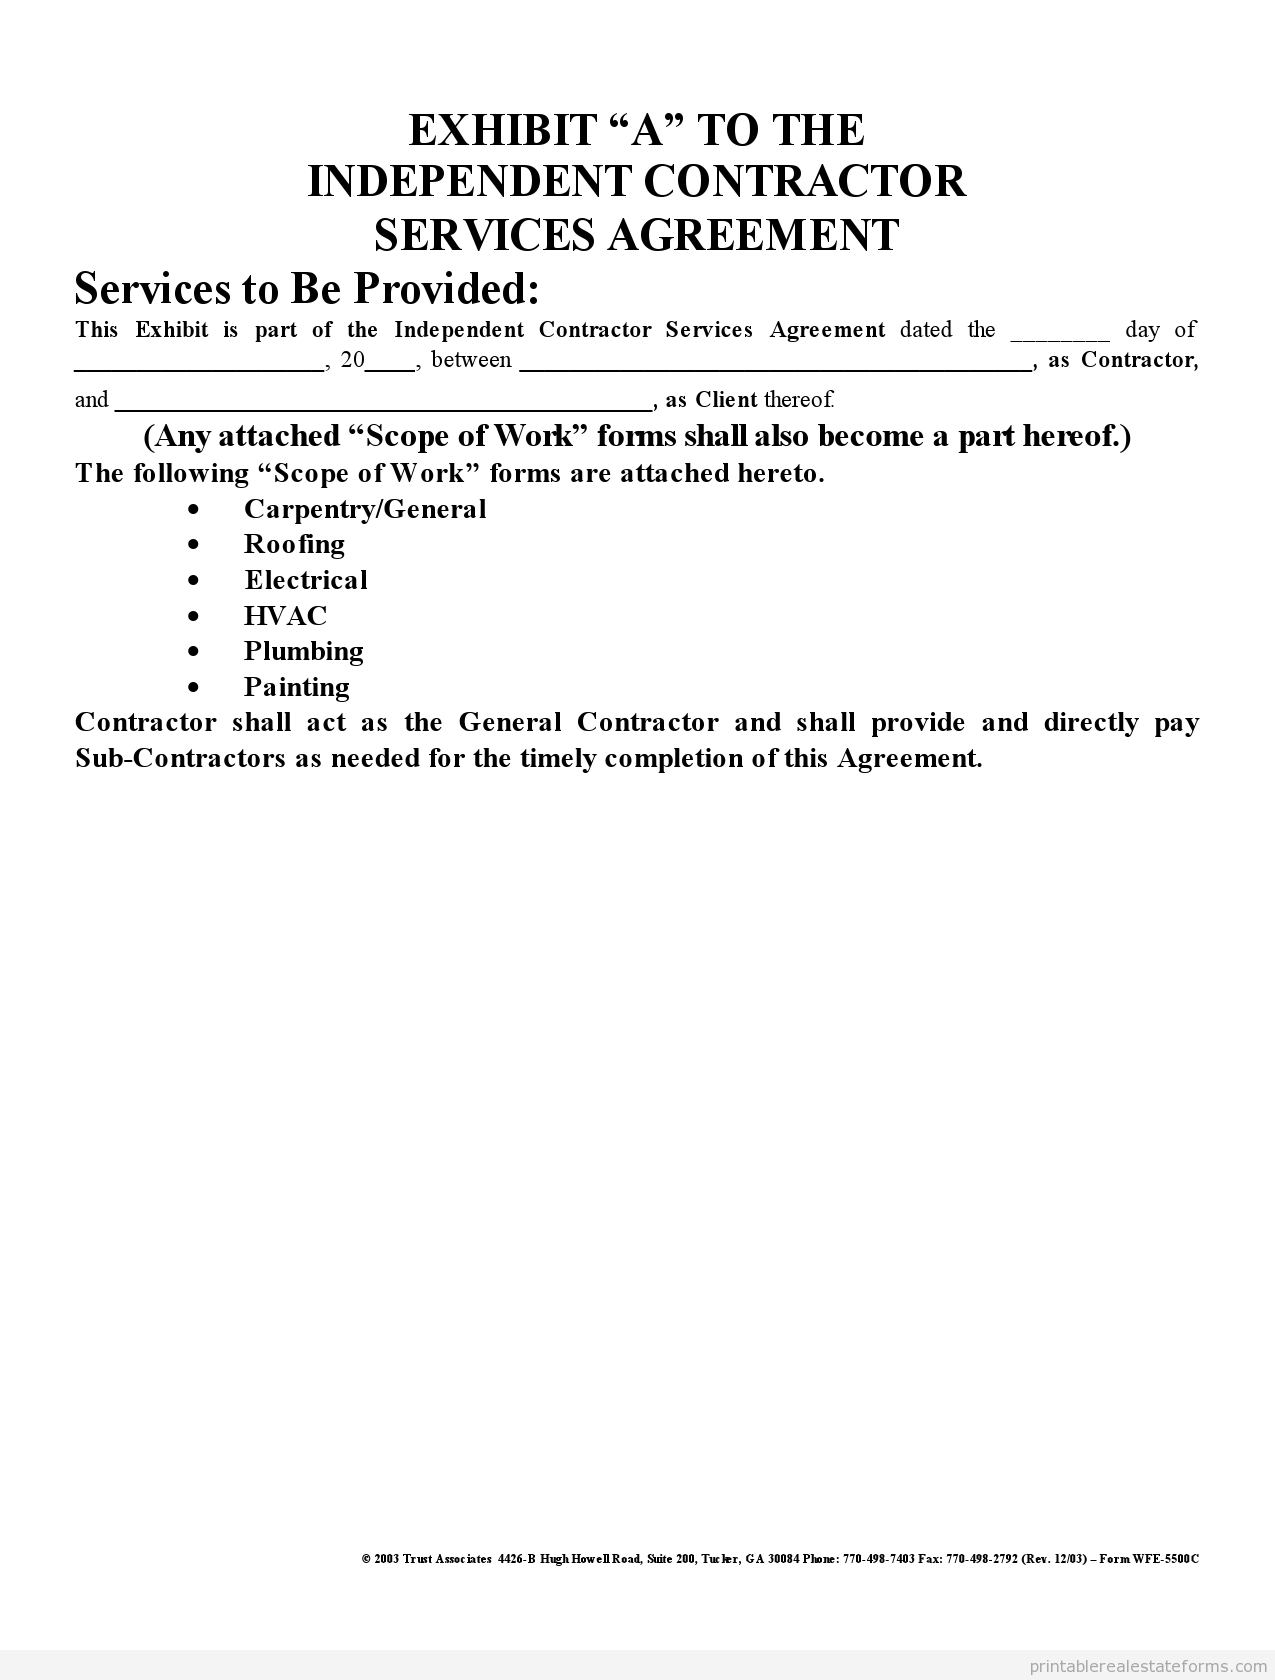 Escrow Agreement Template Get High Quality Printable Temporary